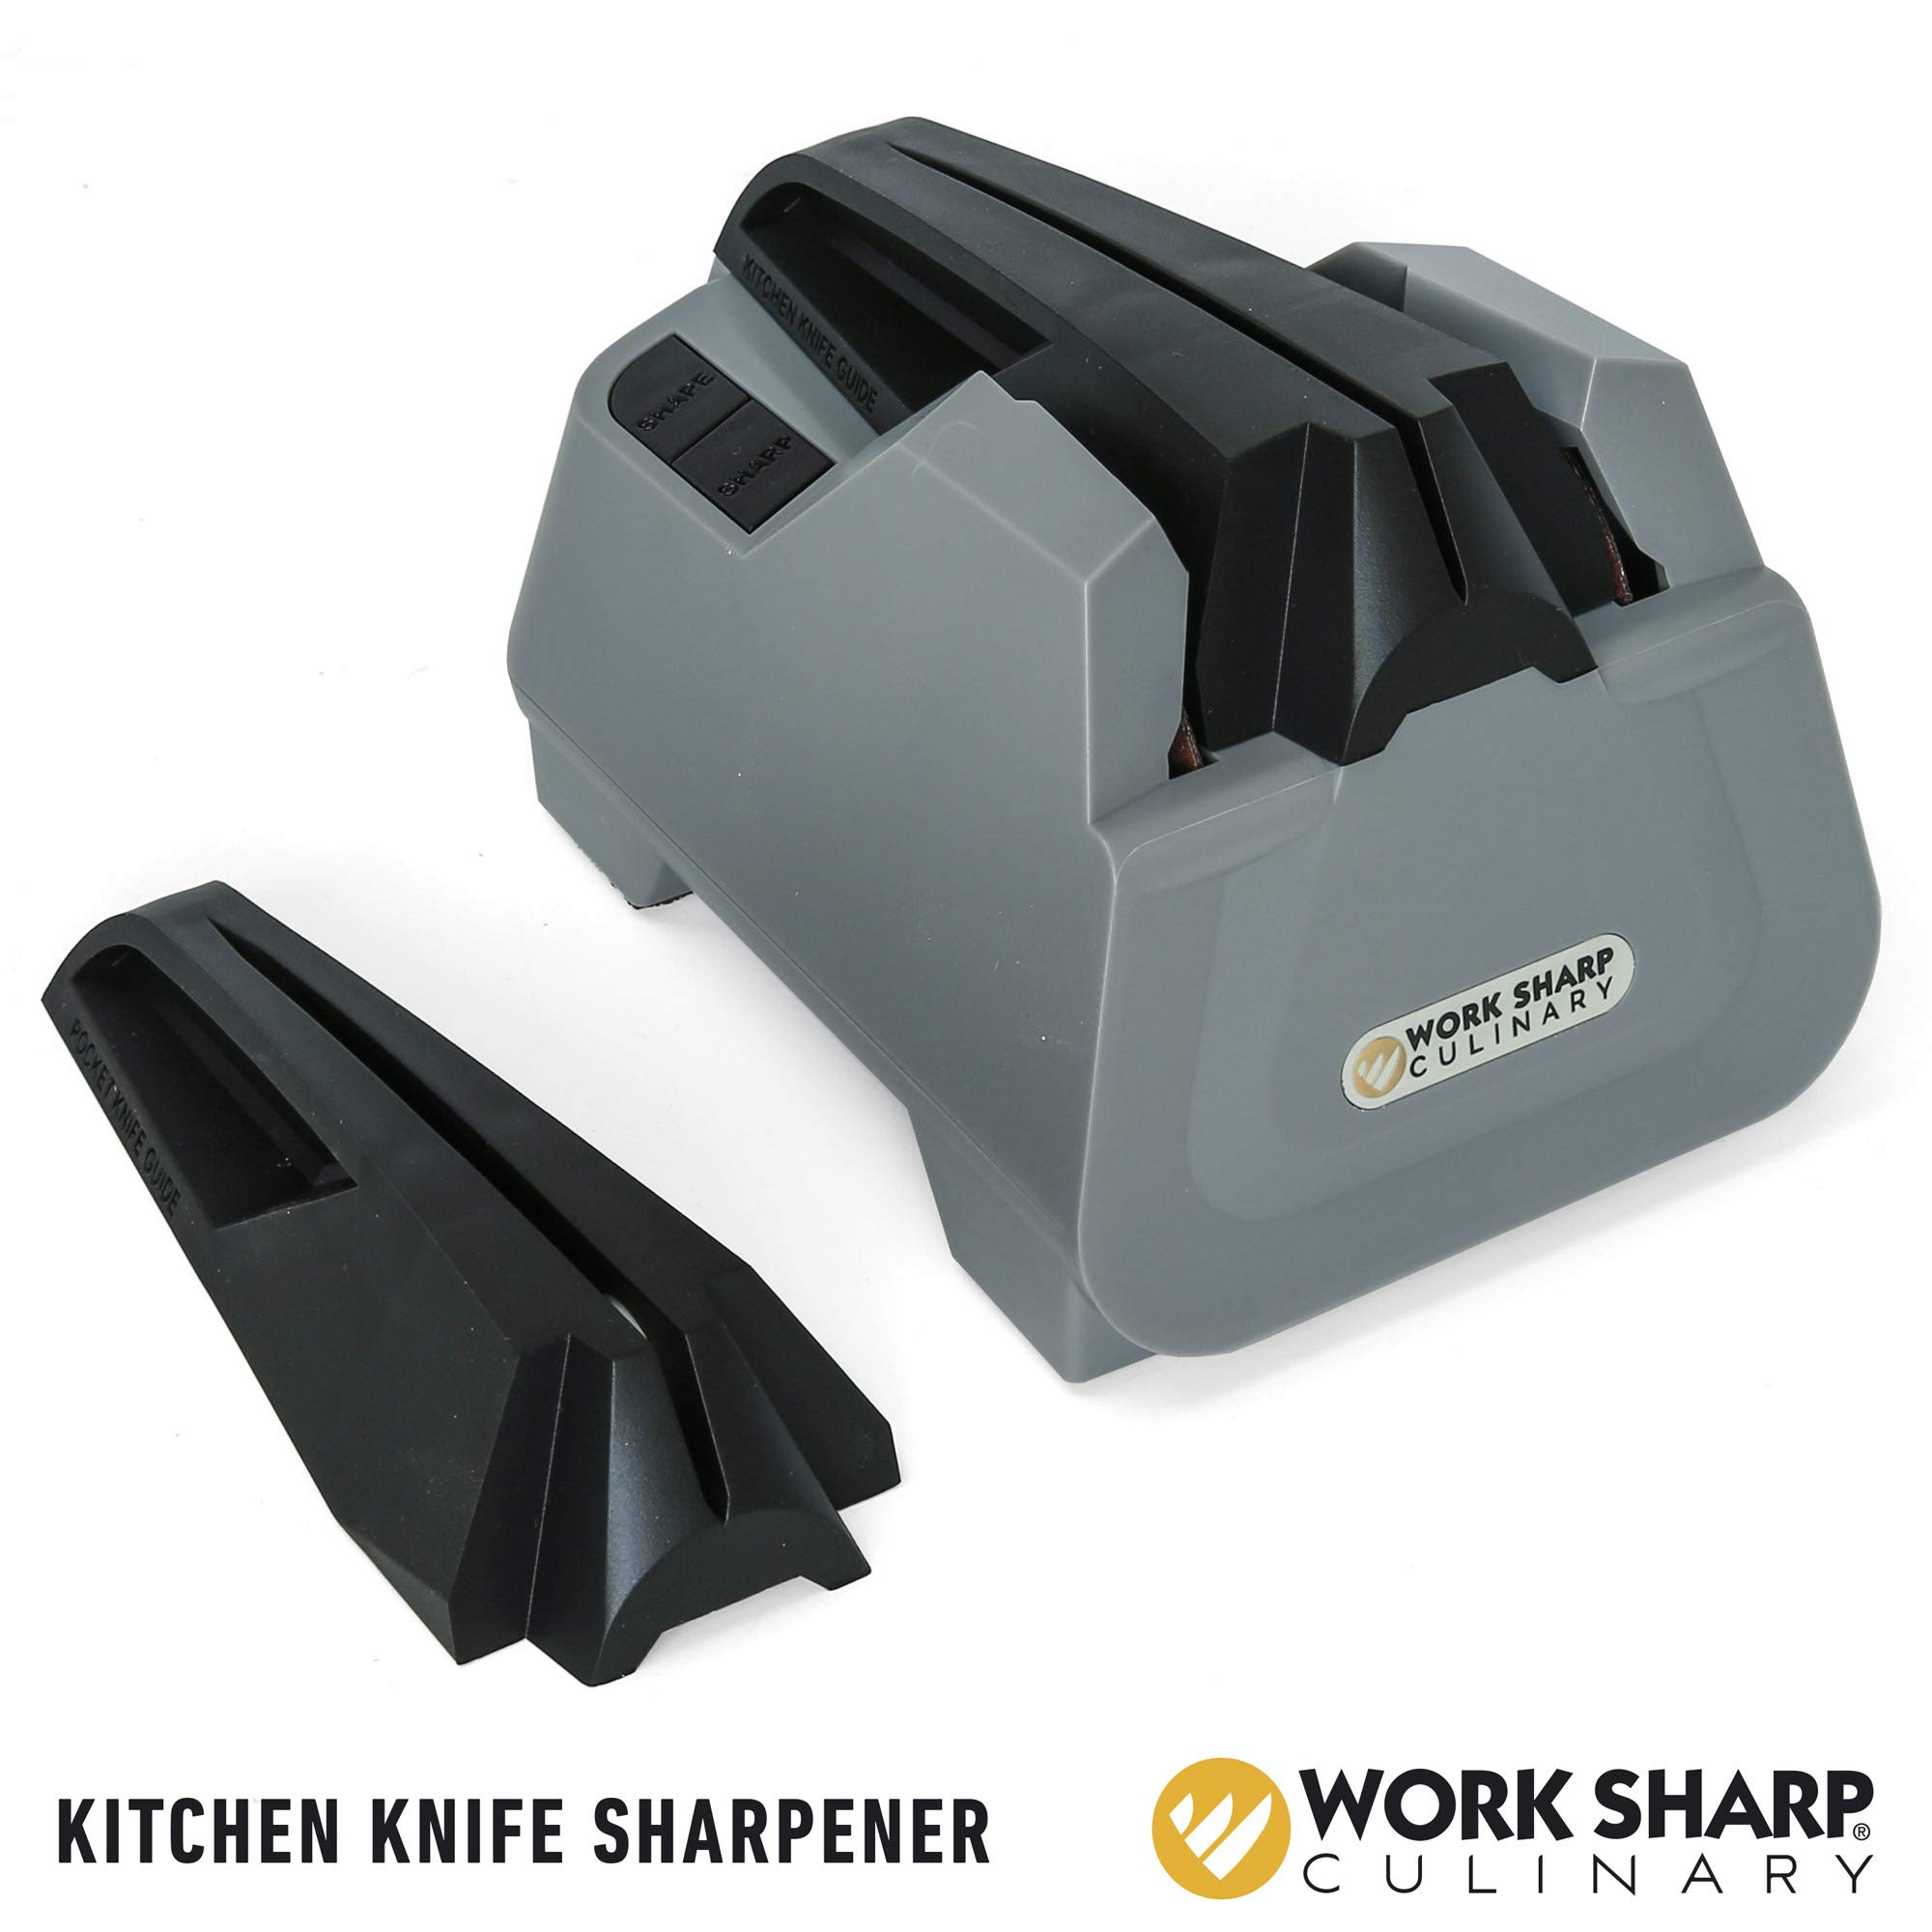 Work Sharp Culinary E2 Plus Kitchen and Pocket Knife Sharpener